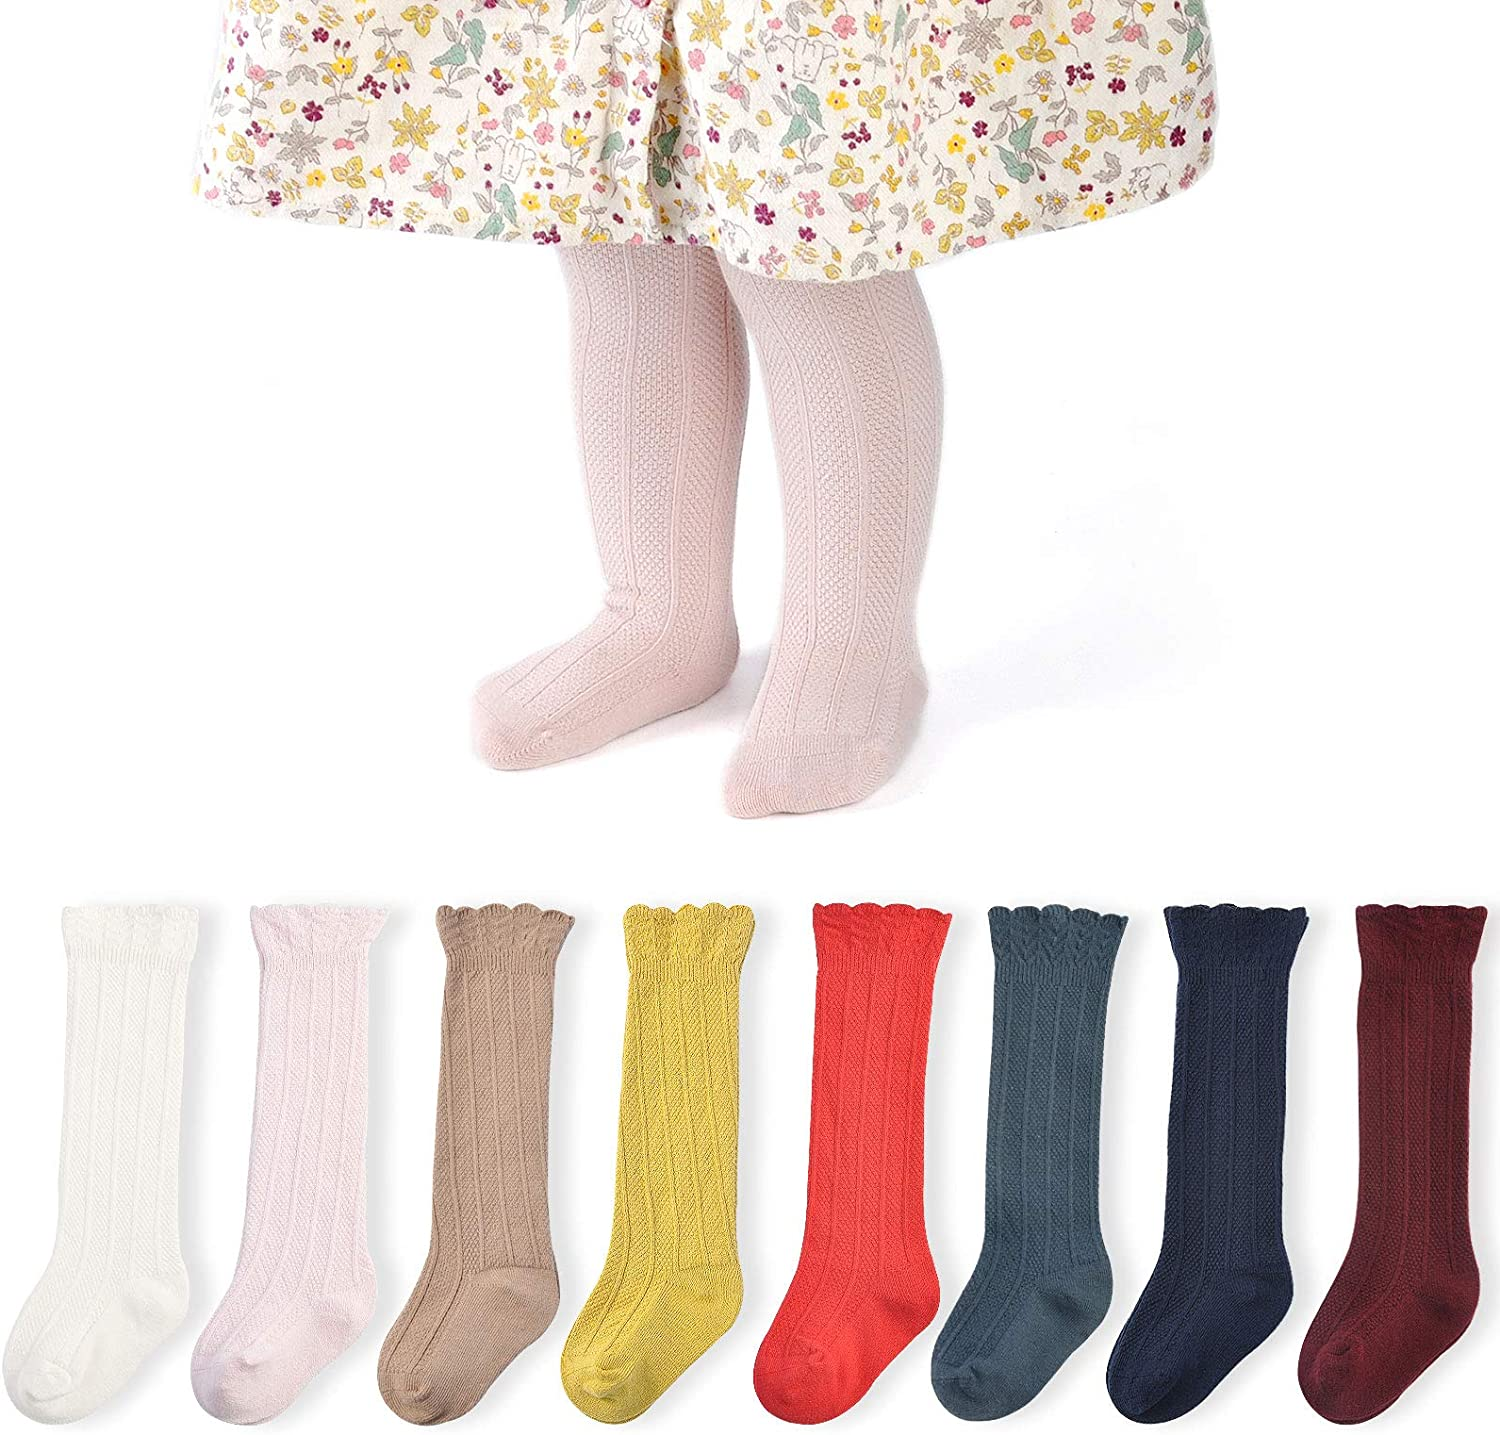 Baby Girl Knee High Socks 5/6/8 Pairs Knit Tube Ruffled Hollow out Long Stockings with Bow for Newborn Infant Toddler Kids